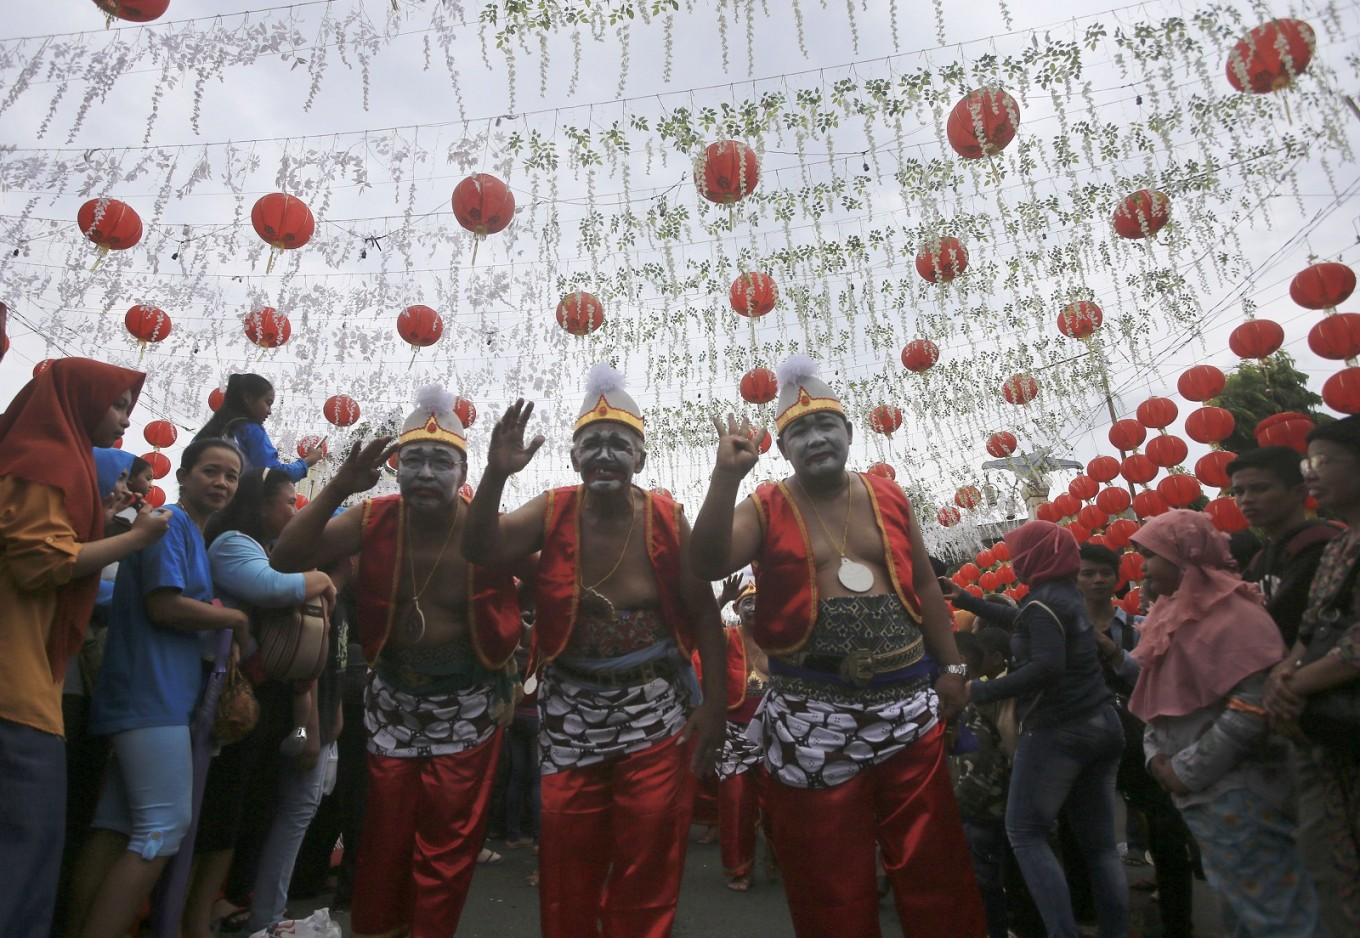 A mash of Chinese New Year, cultural diversity in Surakarta